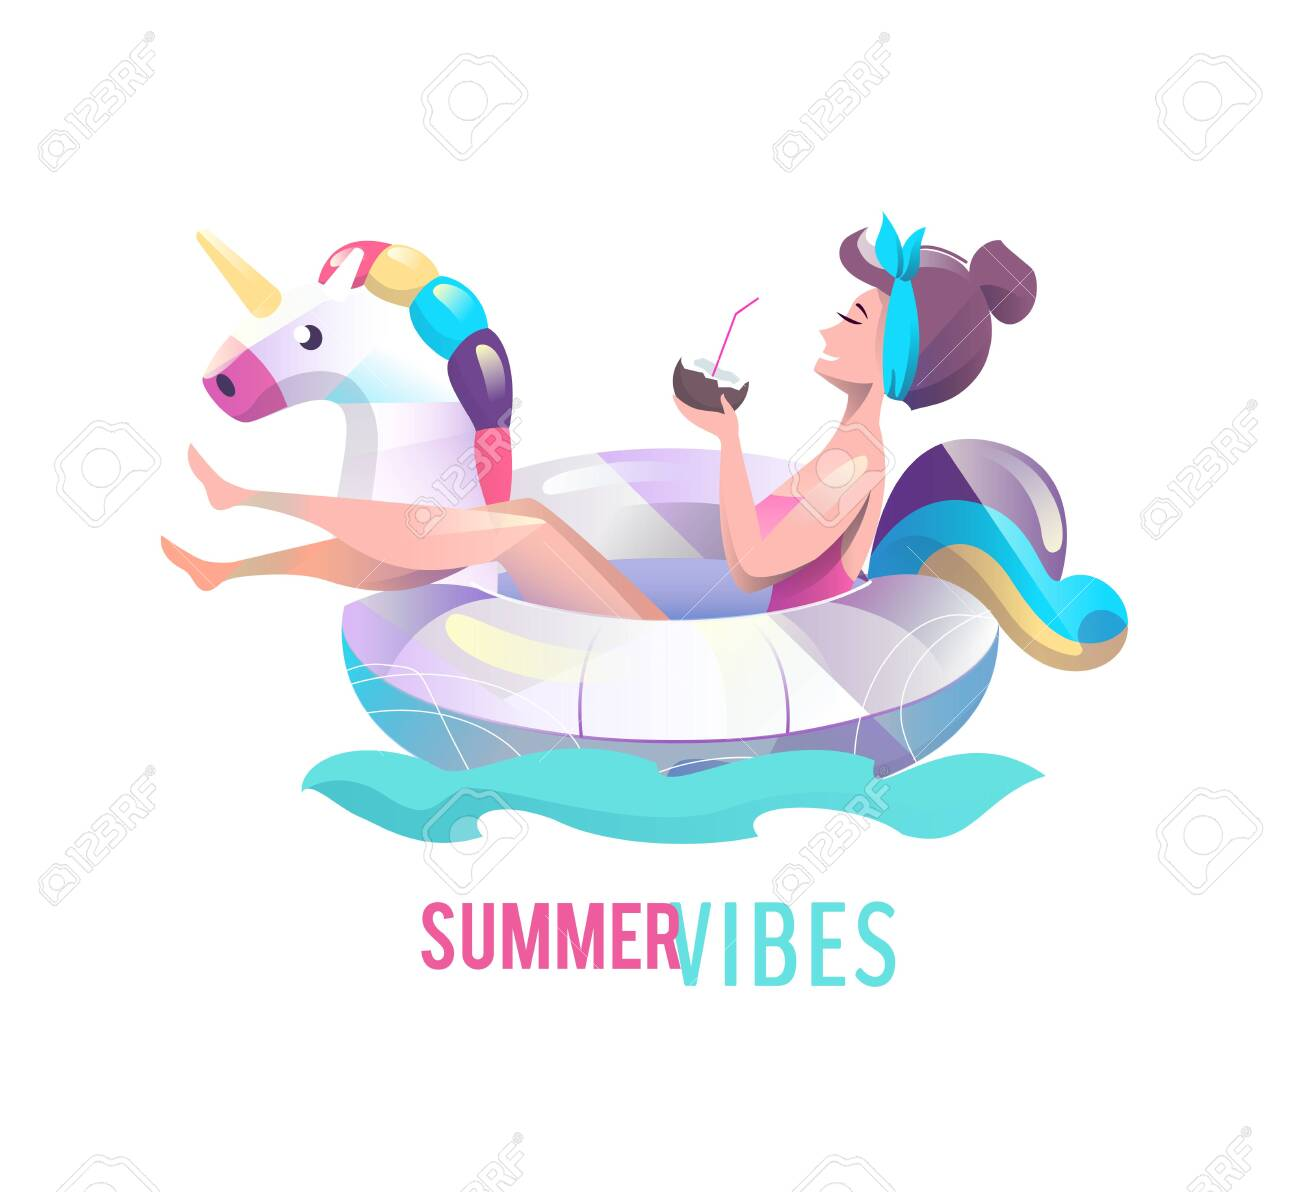 Concept in flat style with woman swimming with circle. Vacation and relaxation. Sunbathing. Vector illustration. - 122413472